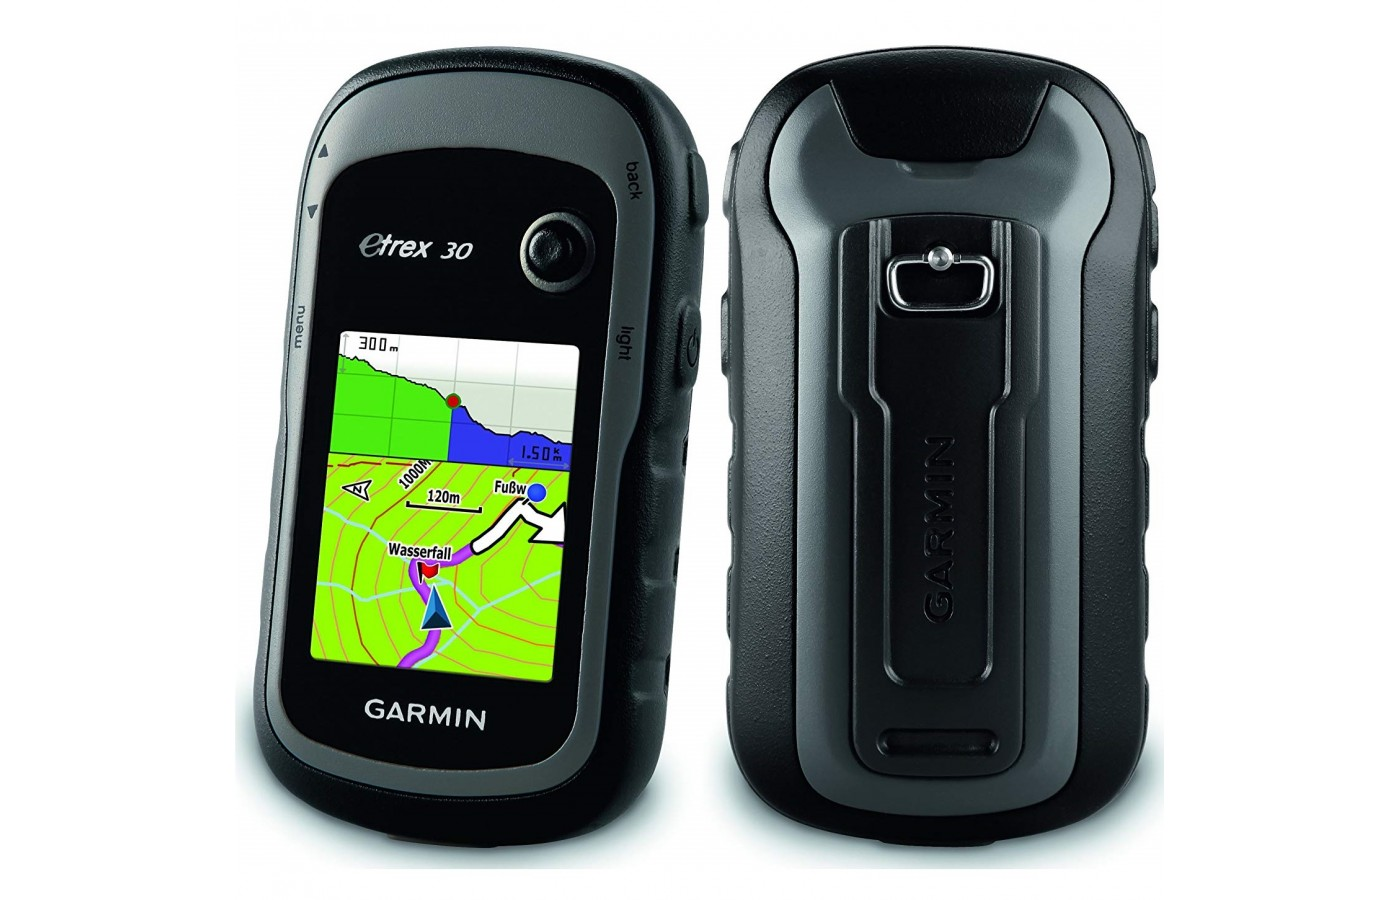 TheThe Garmin eTrex 30 offers a mounting capabilities for ATV, bike and car use. offers internal memory in order to provide access to maps even out of wireless range.